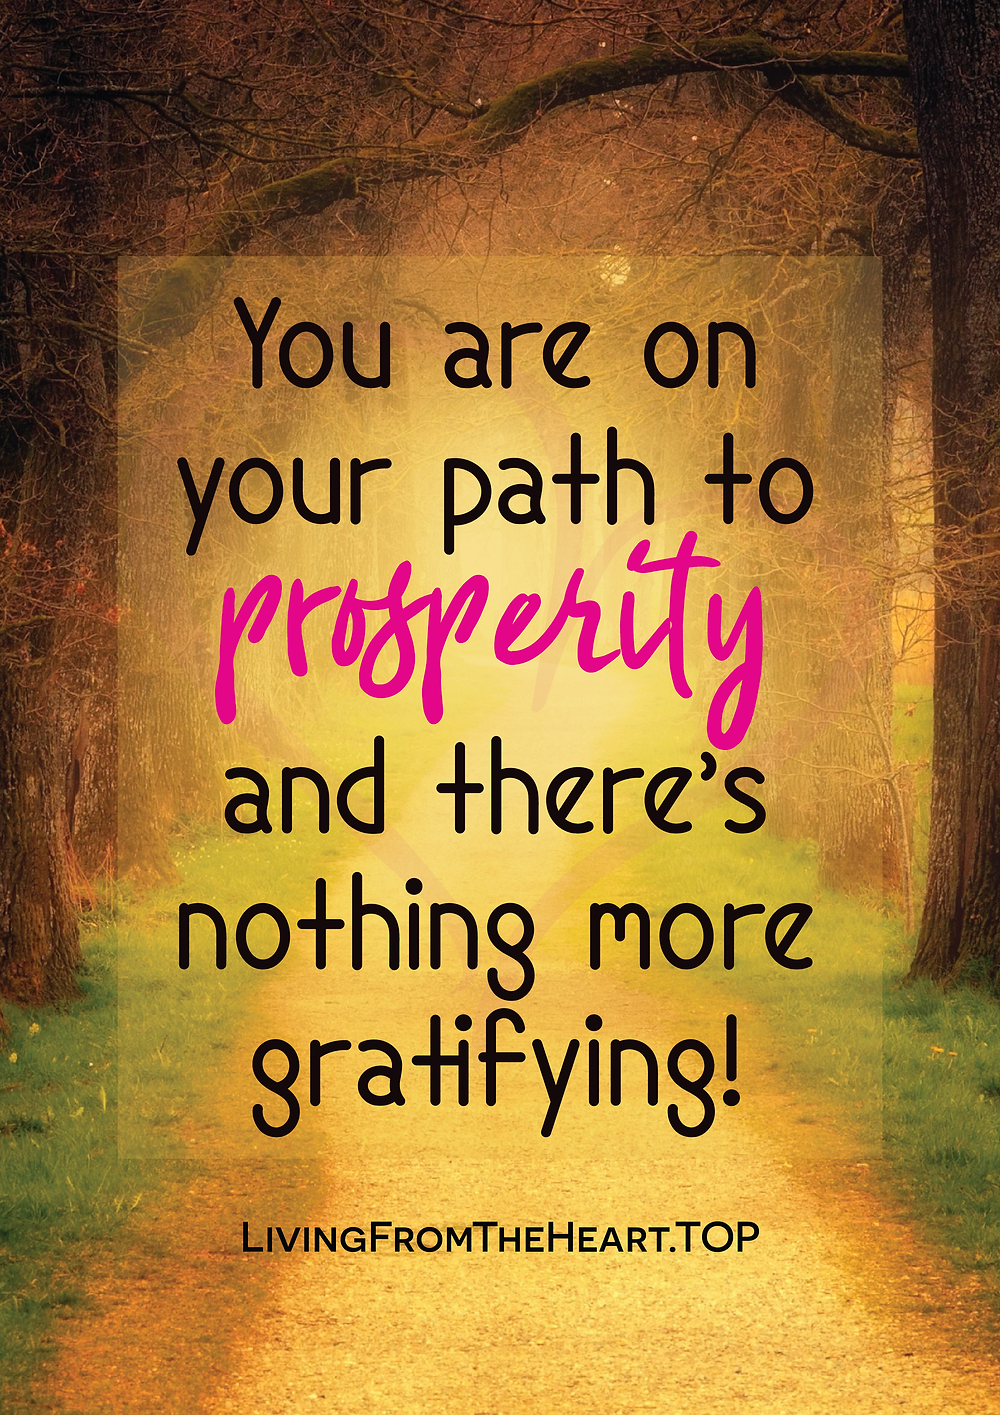 You are on your path to prosperity and there's nothing more gratifying.